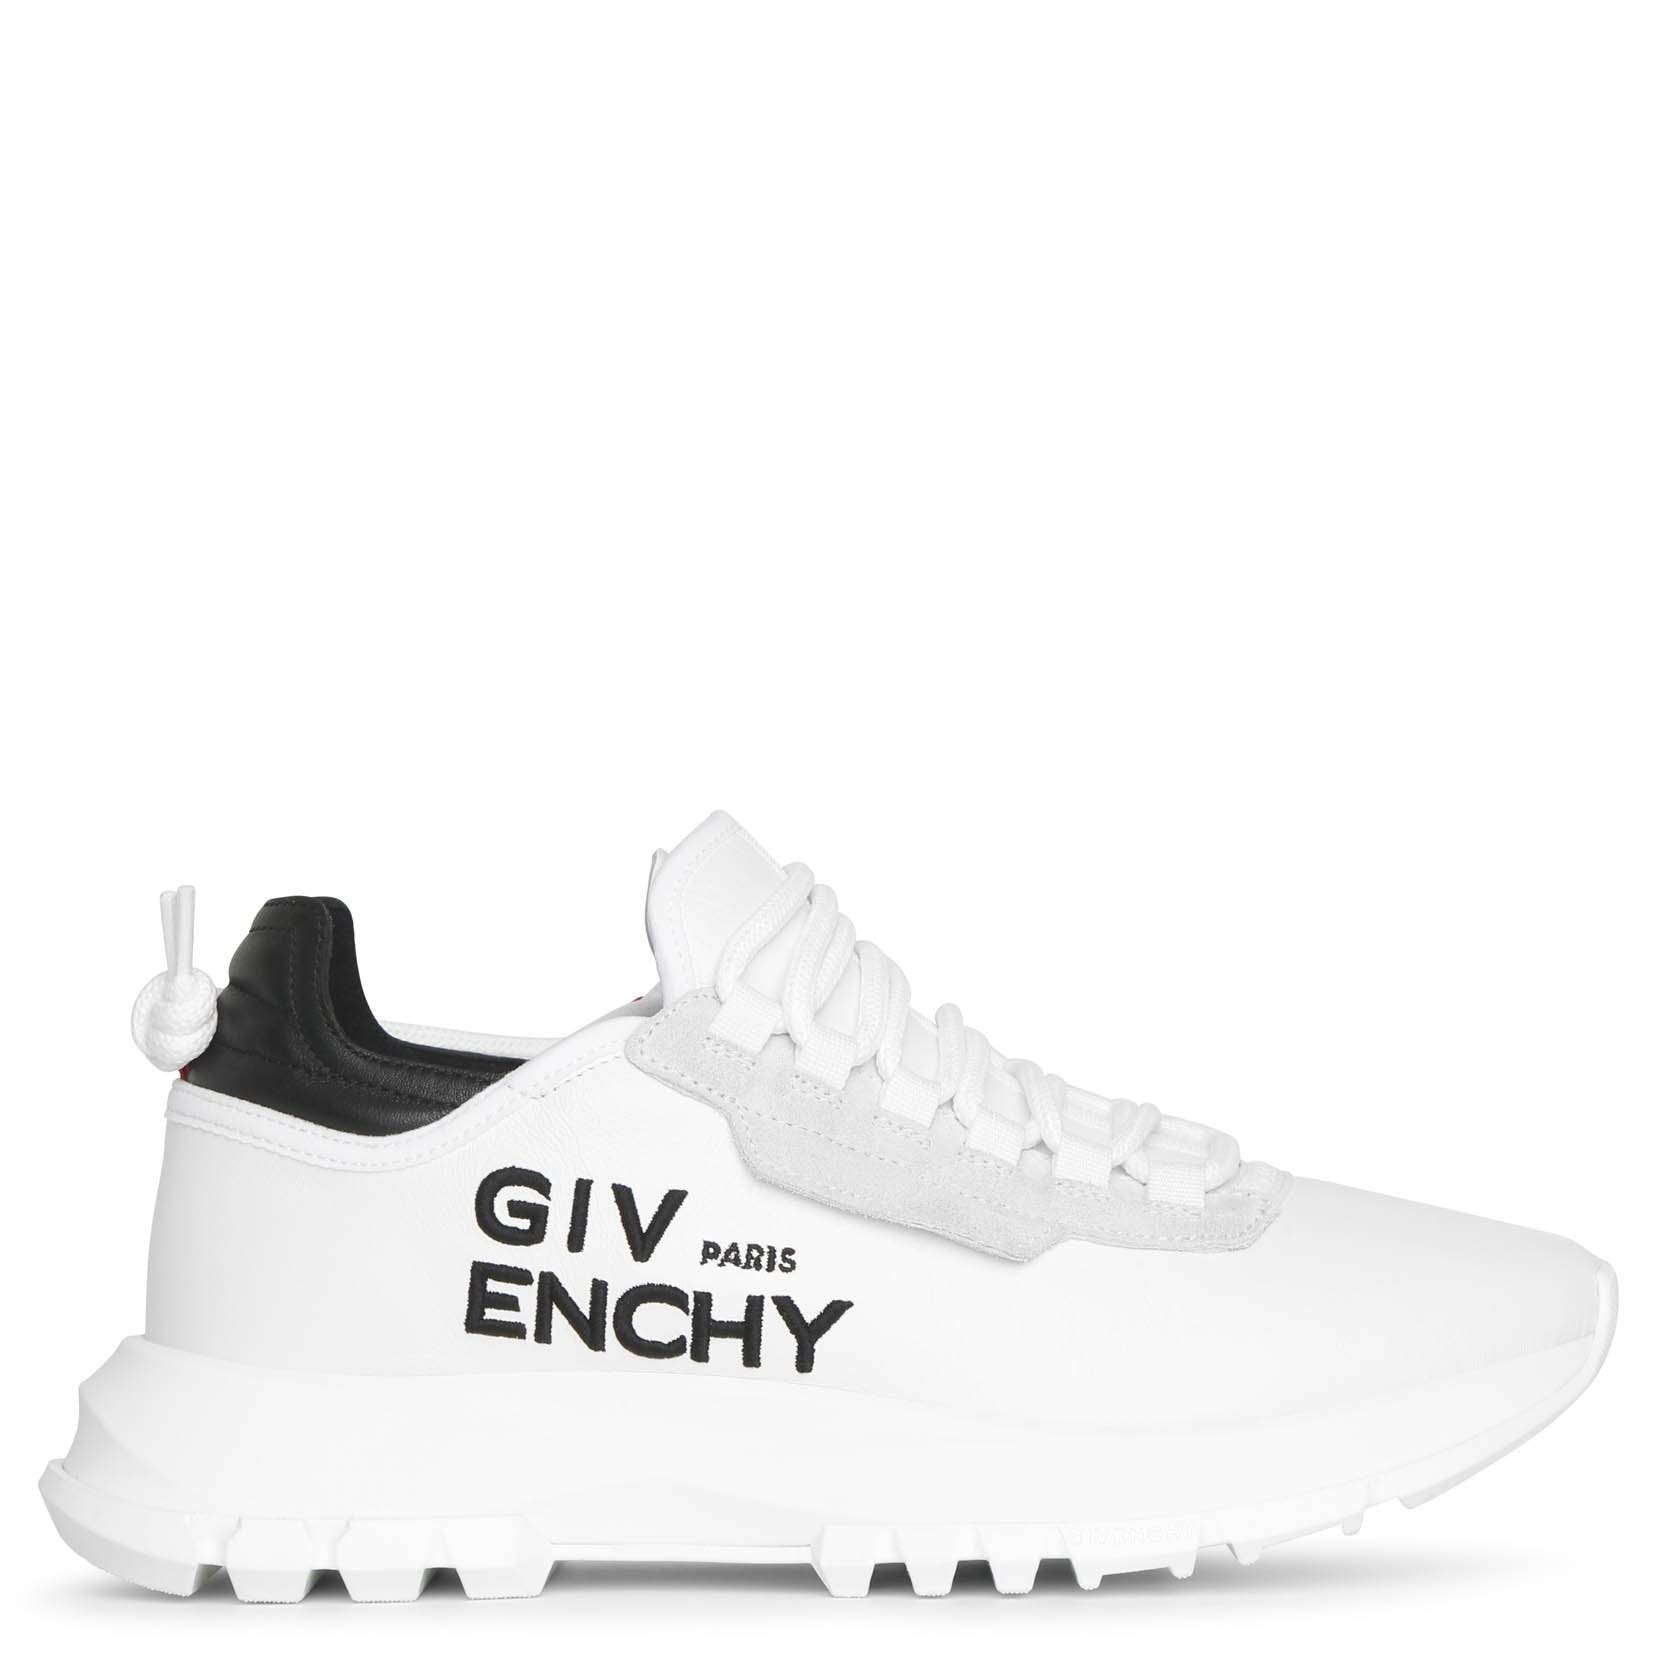 Givenchy Spectre white sneakers  - white - female - Size: 36